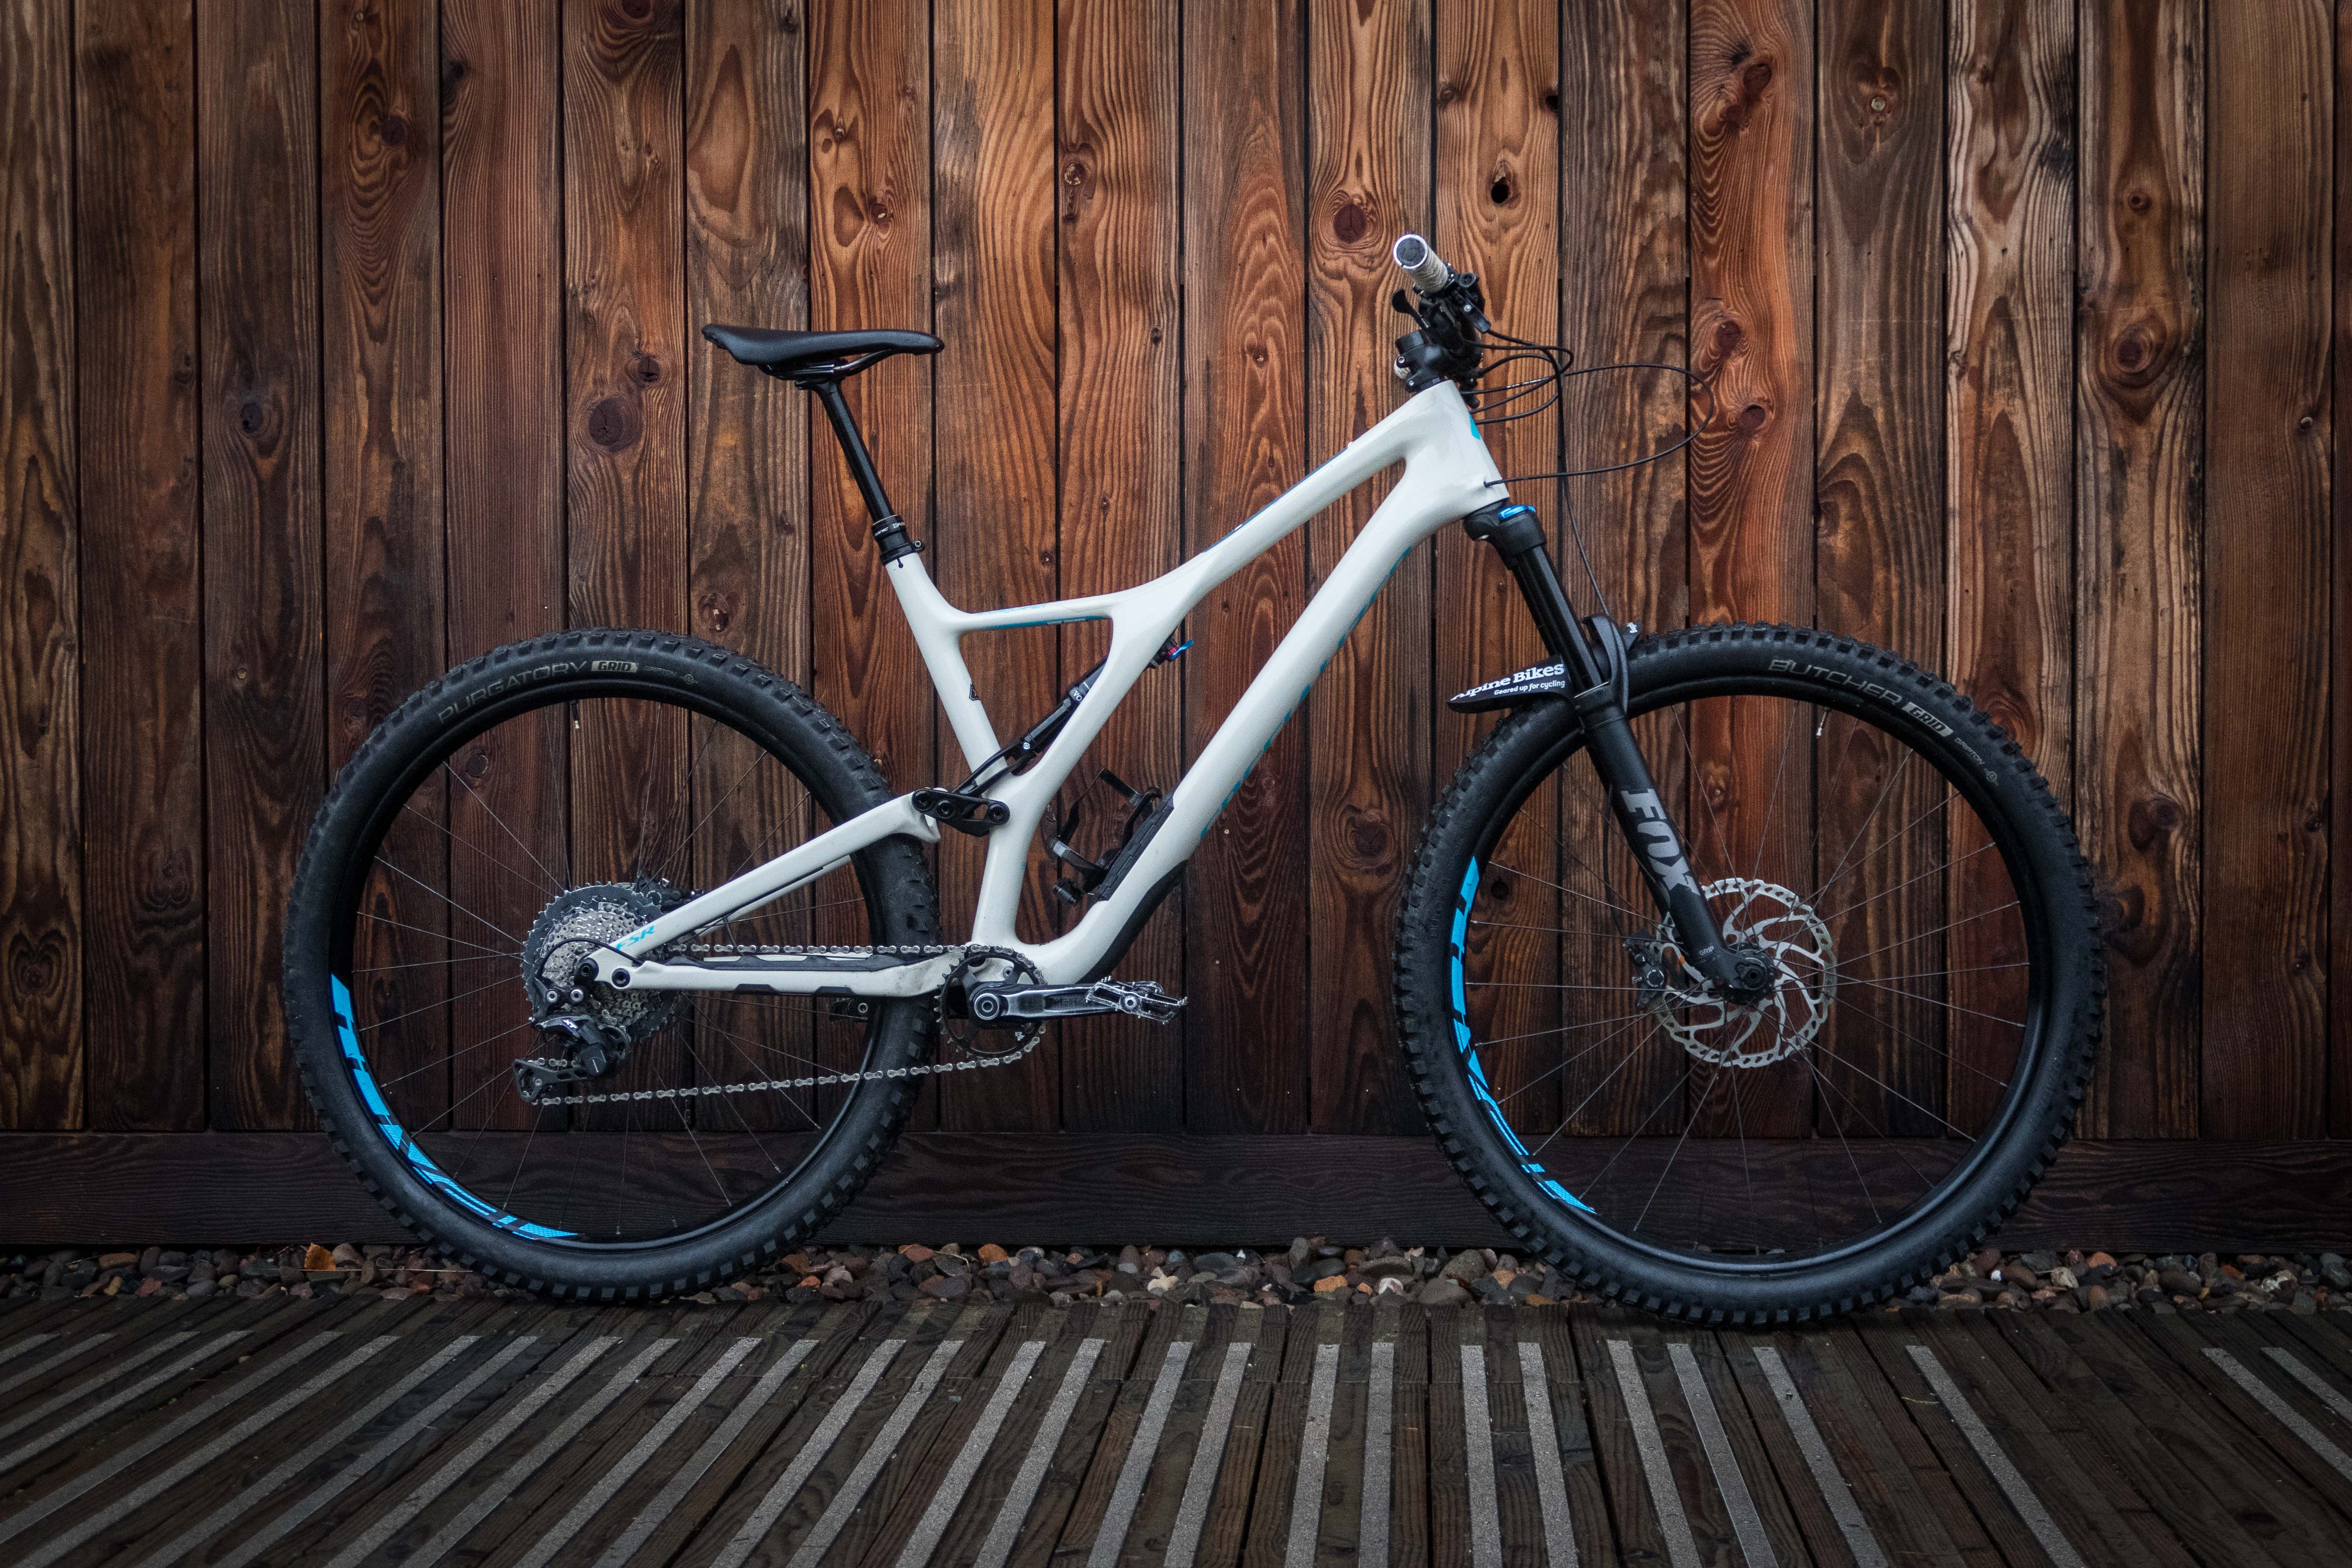 faa136b33f5 Sale! Ex Demo Specialized Stumpjumper Comp Carbon 29 (Size Medium & X Large).  prev